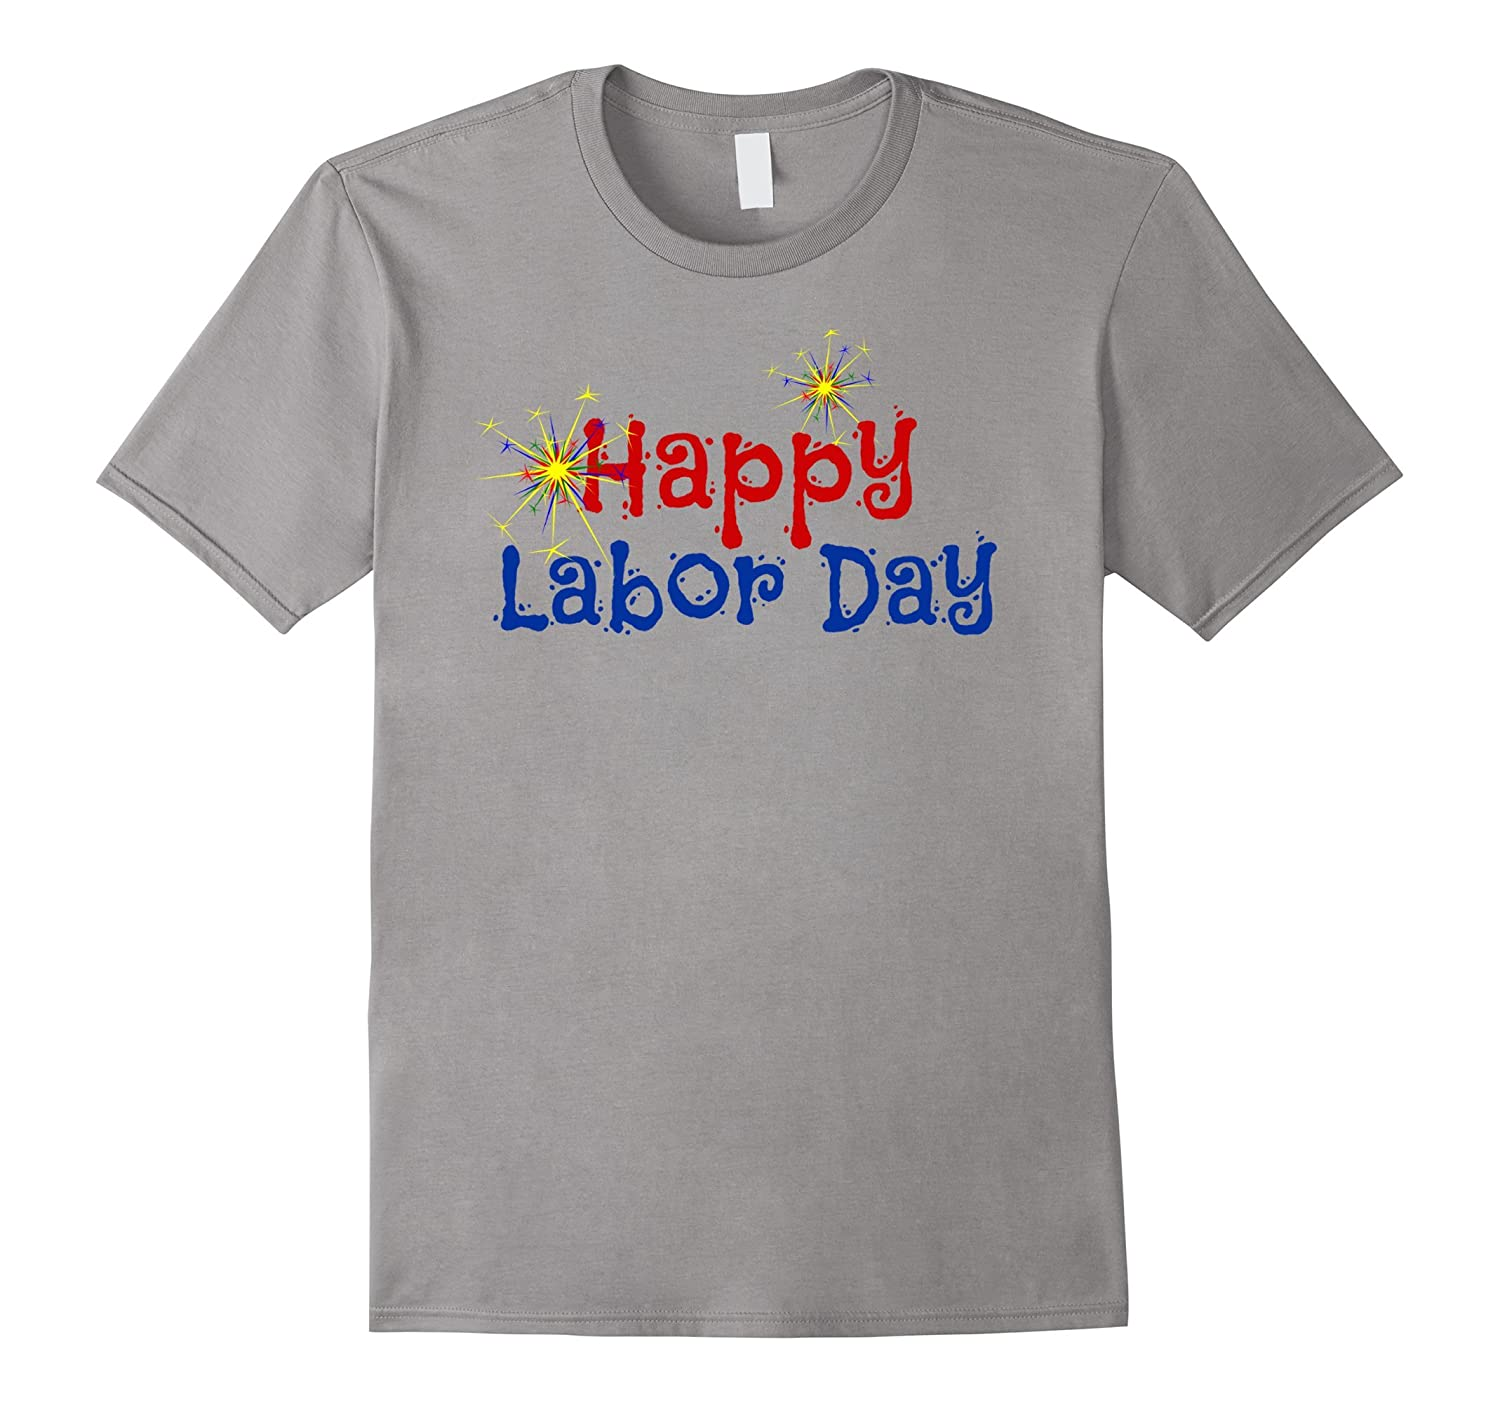 Happy Labor Day T shirt Holiday Shirt Gift for Workers-BN